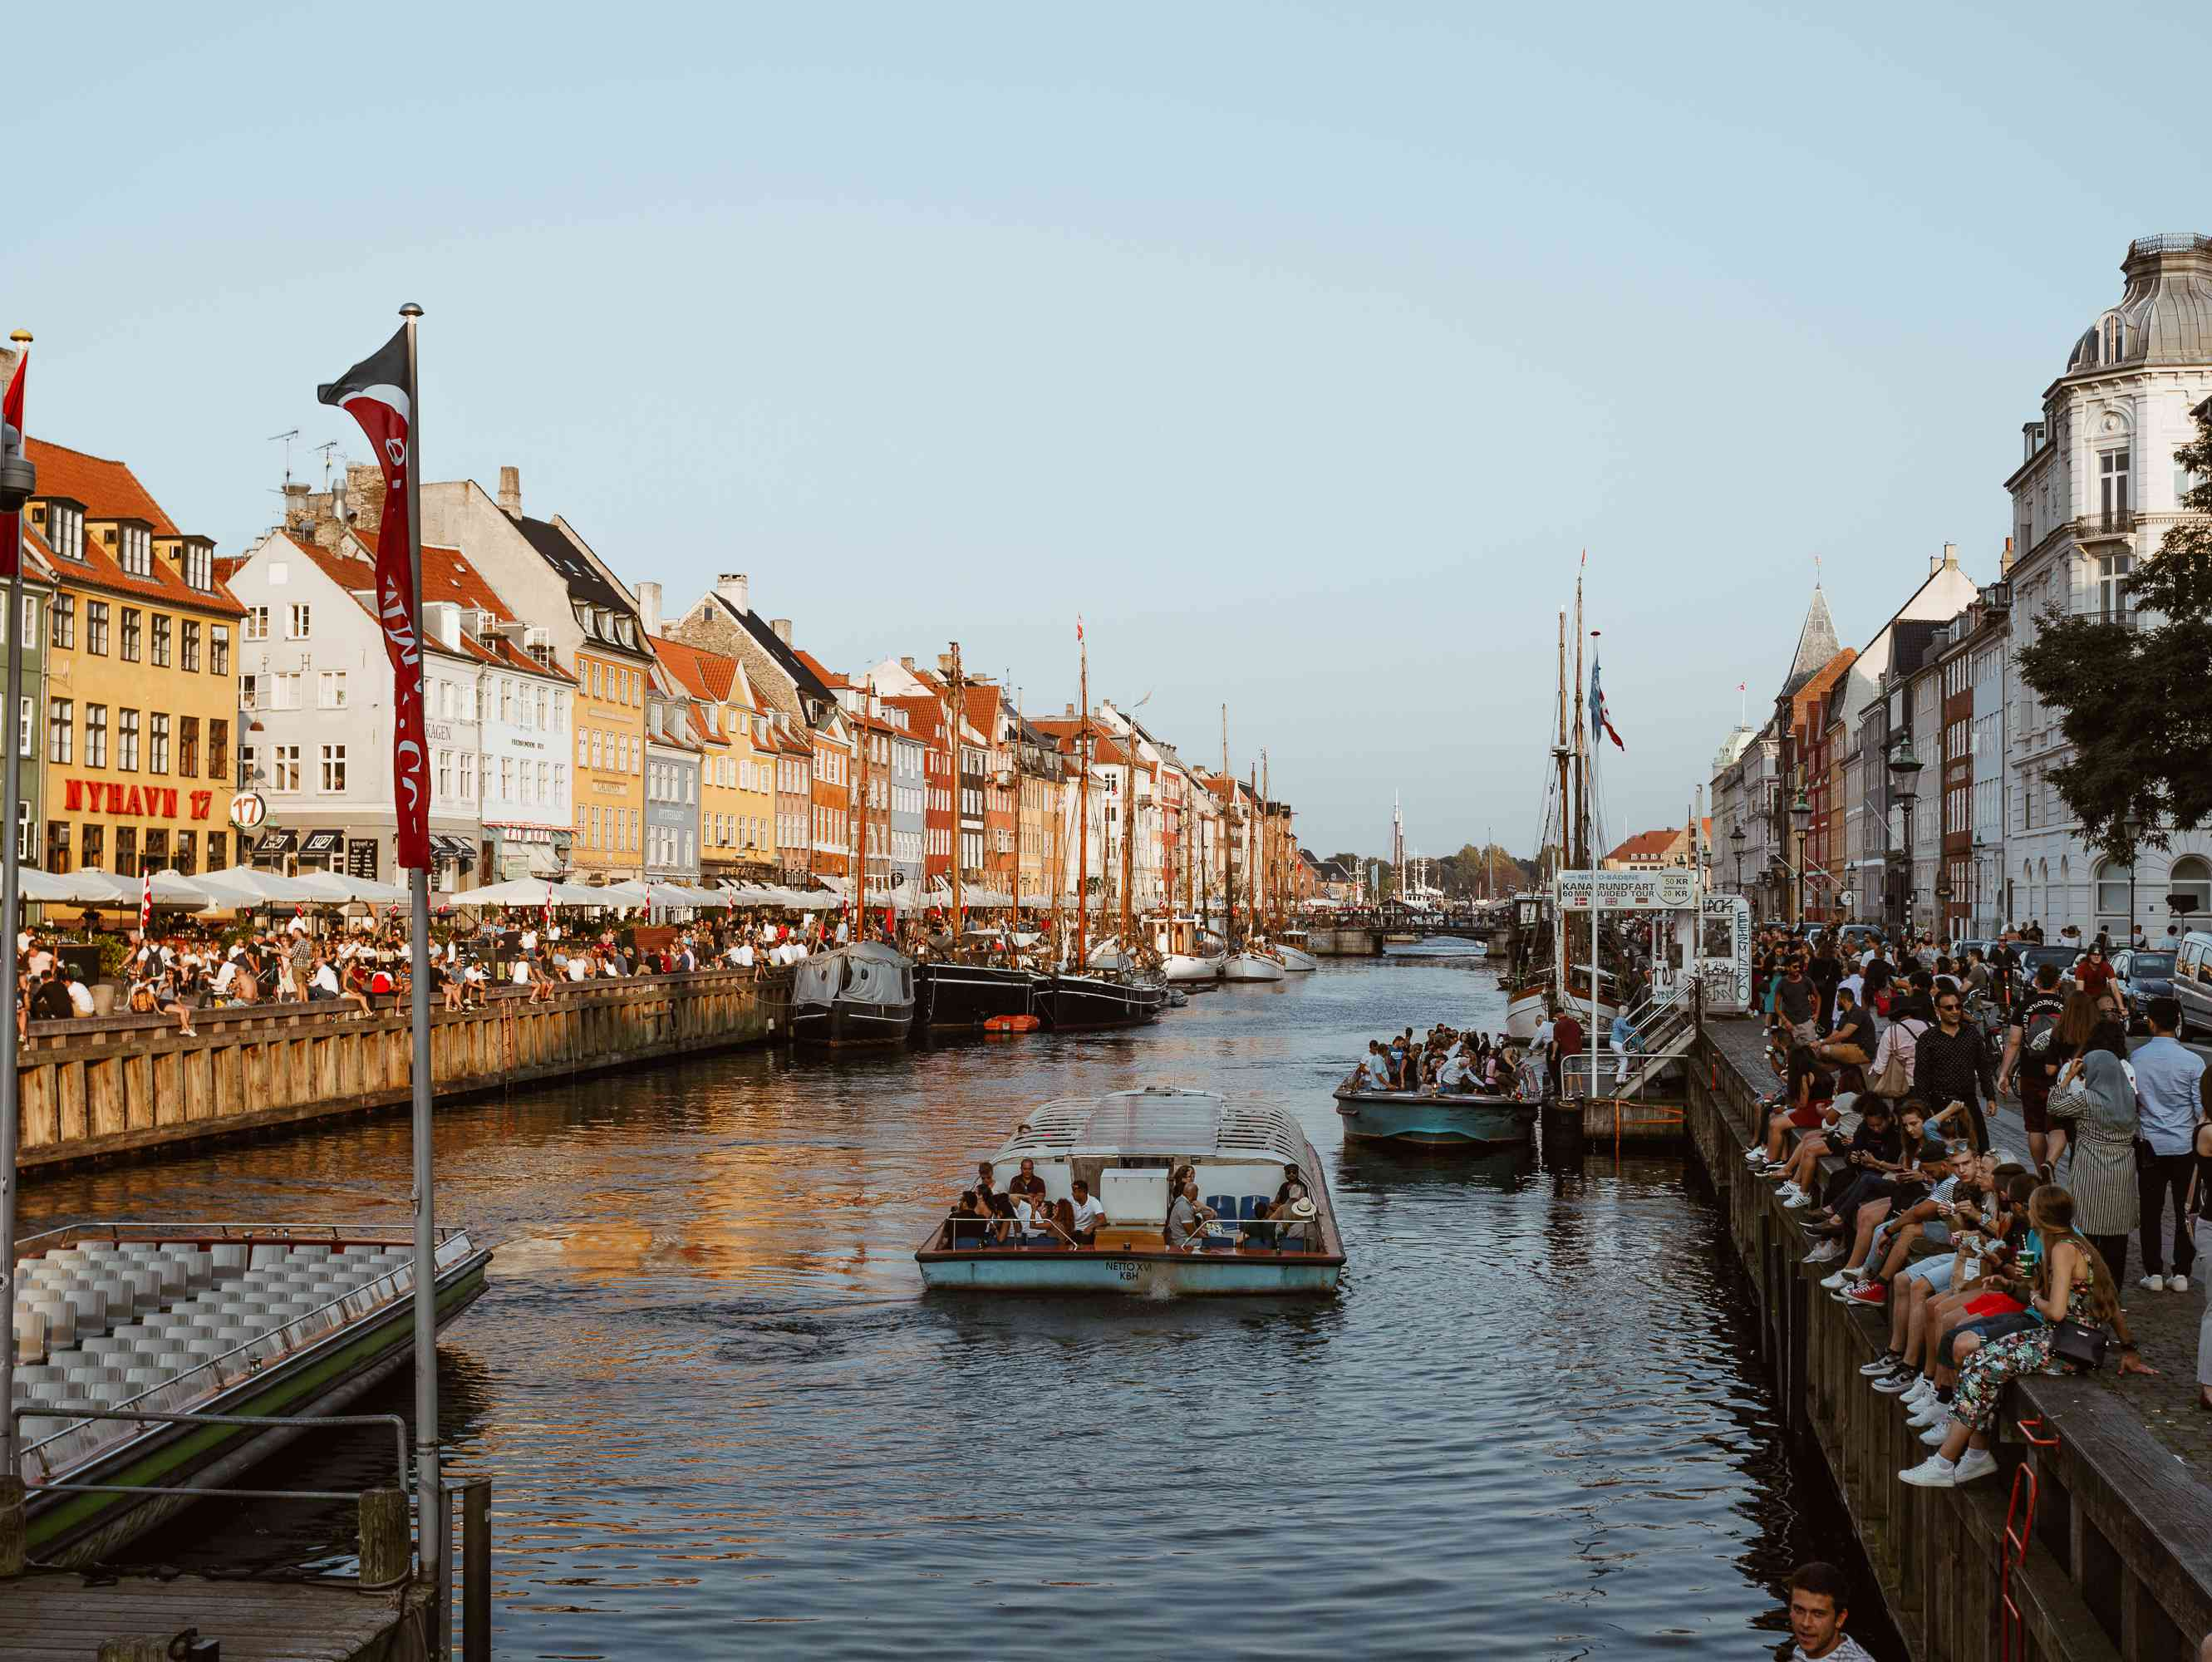 A lot of people in Nyhavn Harbor